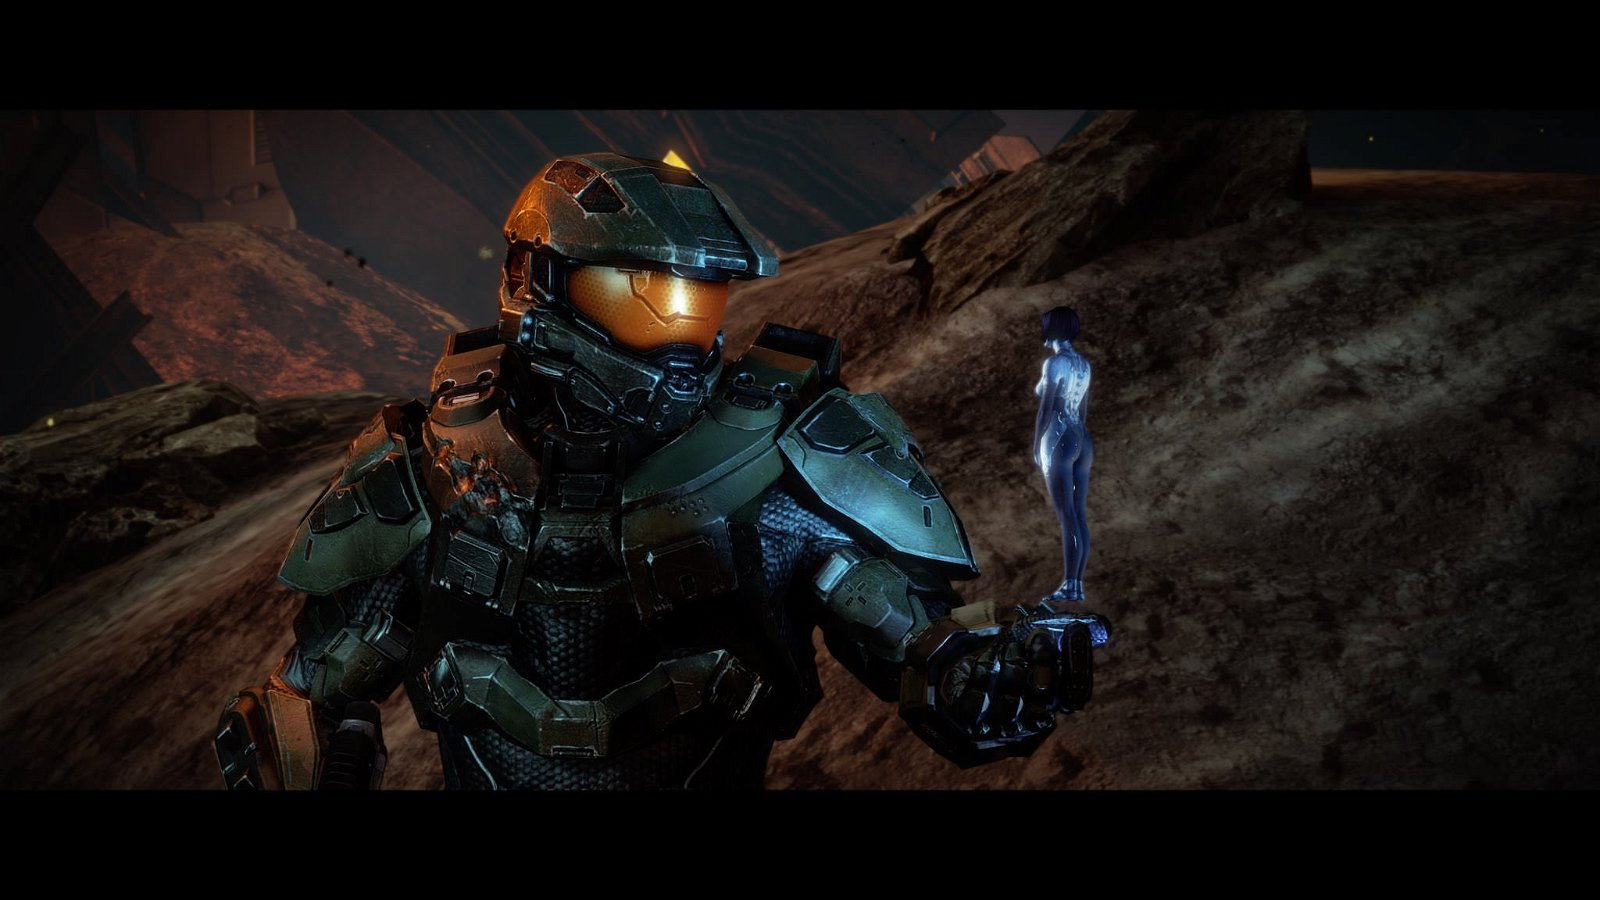 343 Outlines Plans To Further Improve Master Chief Collection, Beta Looks Promising